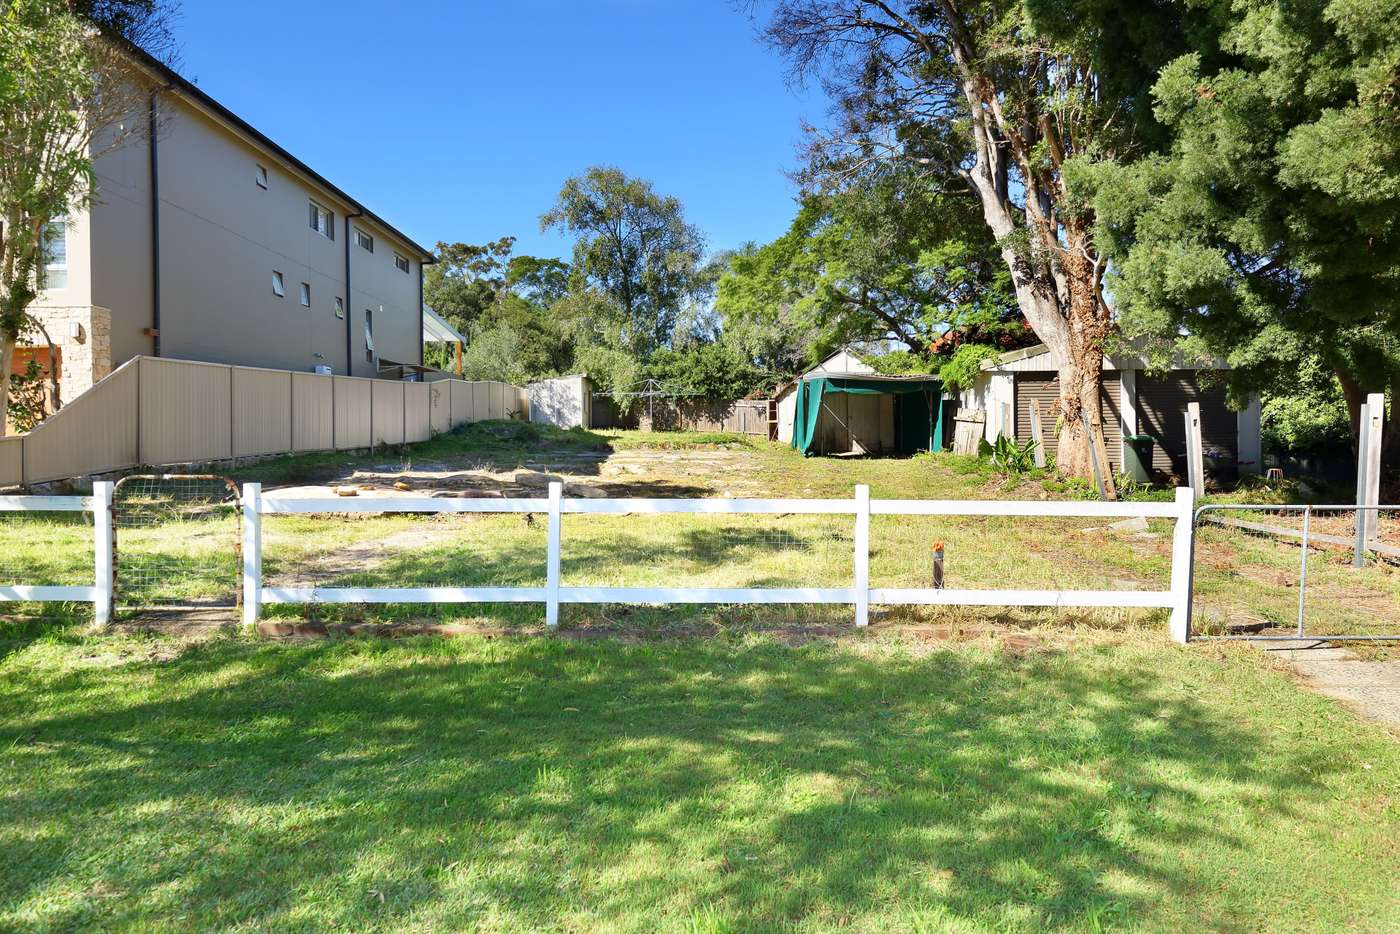 Main view of Homely house listing, 33 Baker Street, Oatley NSW 2223